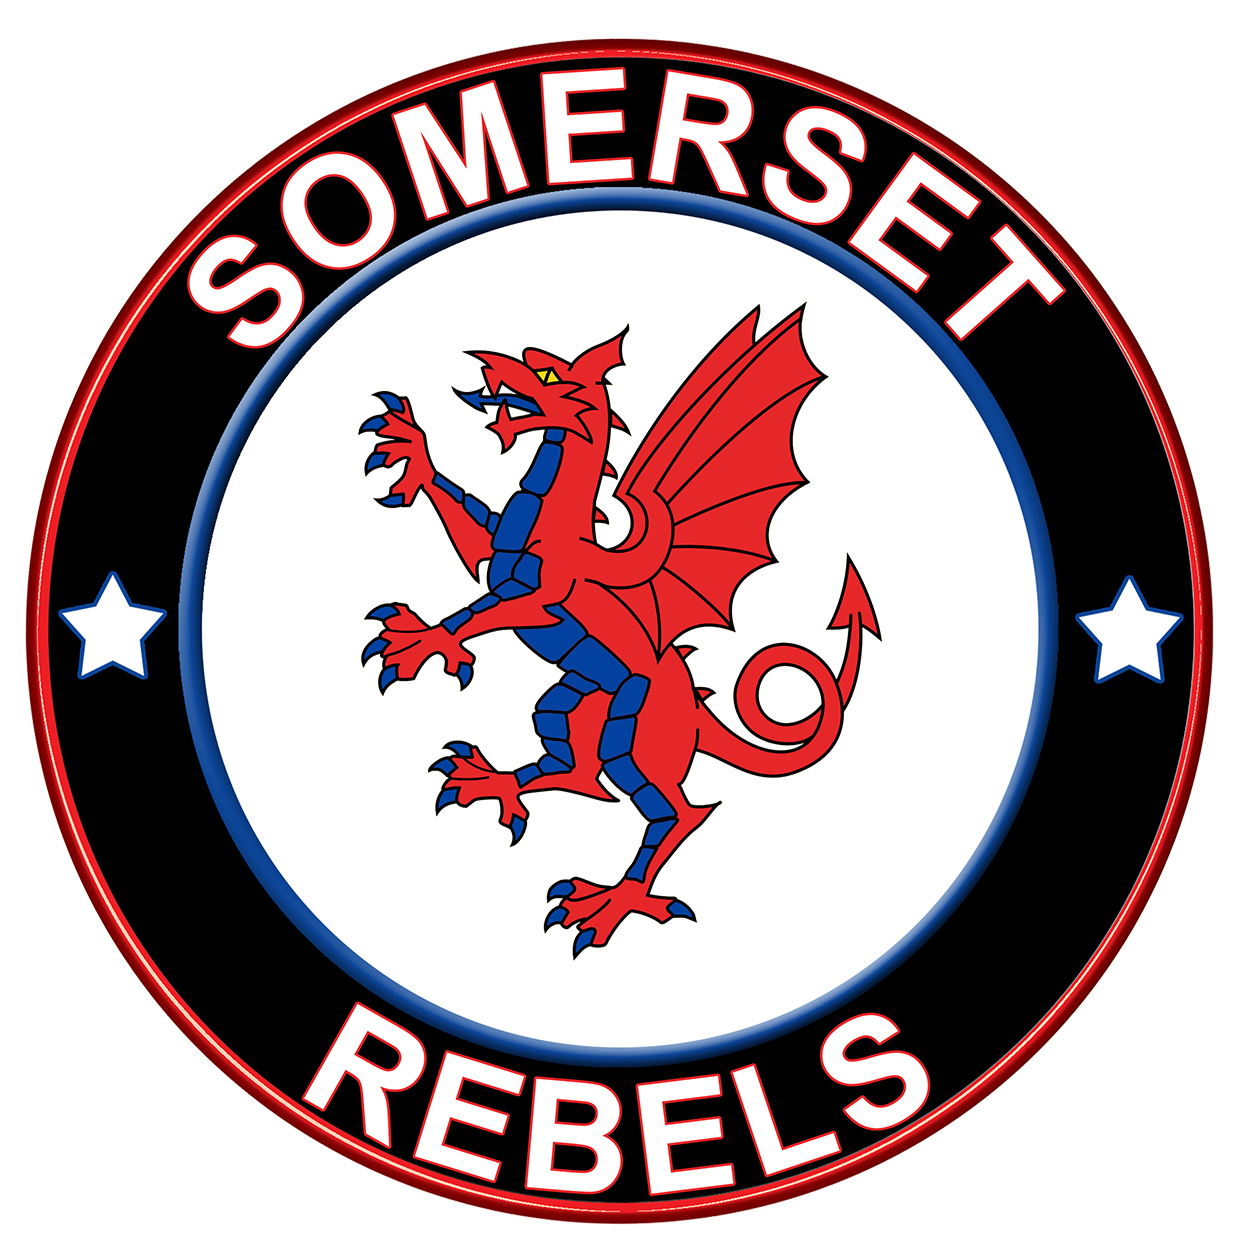 2016_somerset_logo_jpeg.jpg